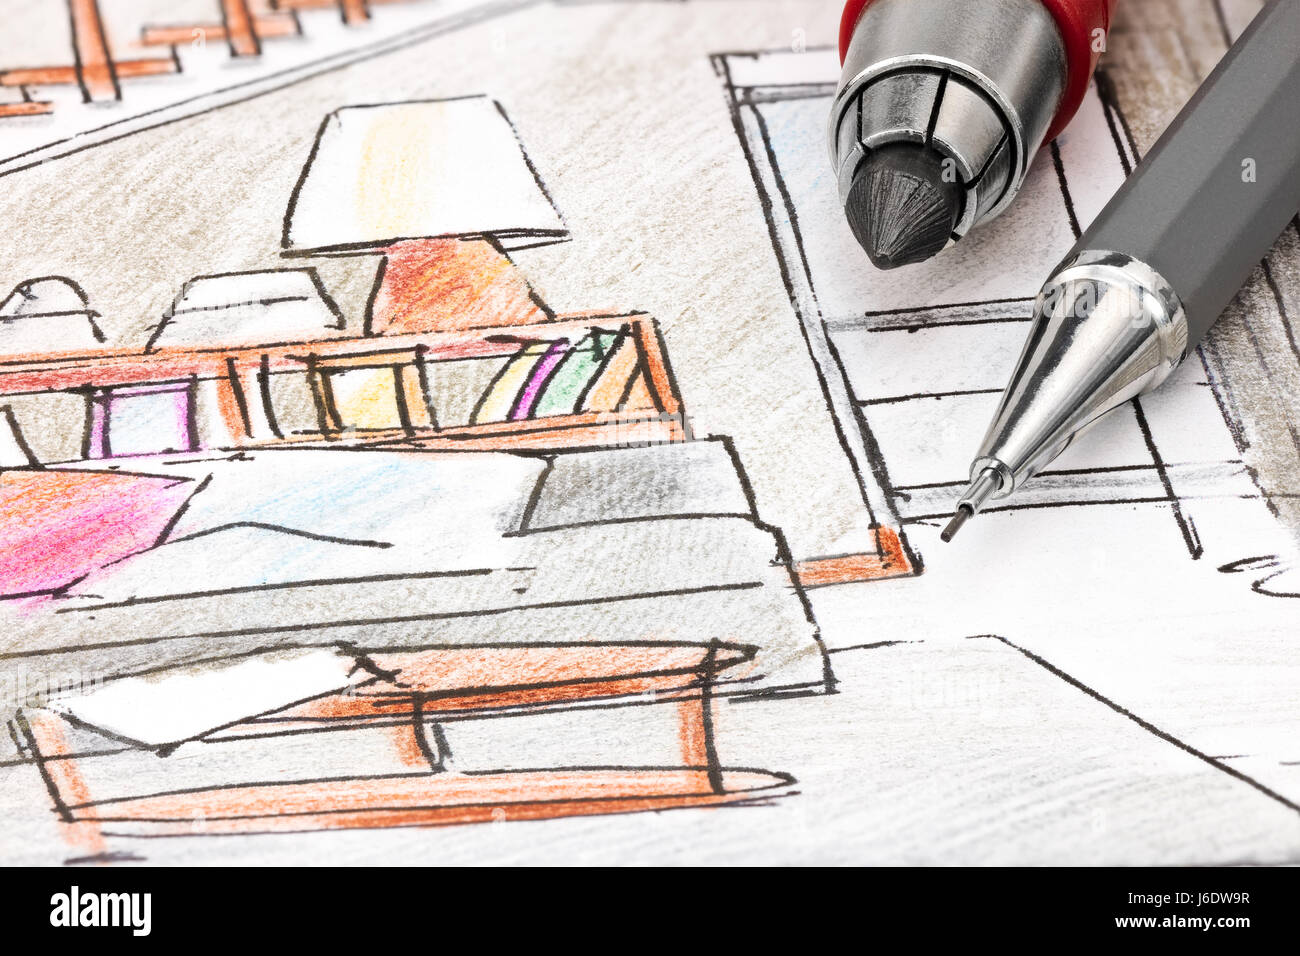 drawing tools. Designers Drawing Tools On Colored Draft Sketch Of Living Room Interior Macro View